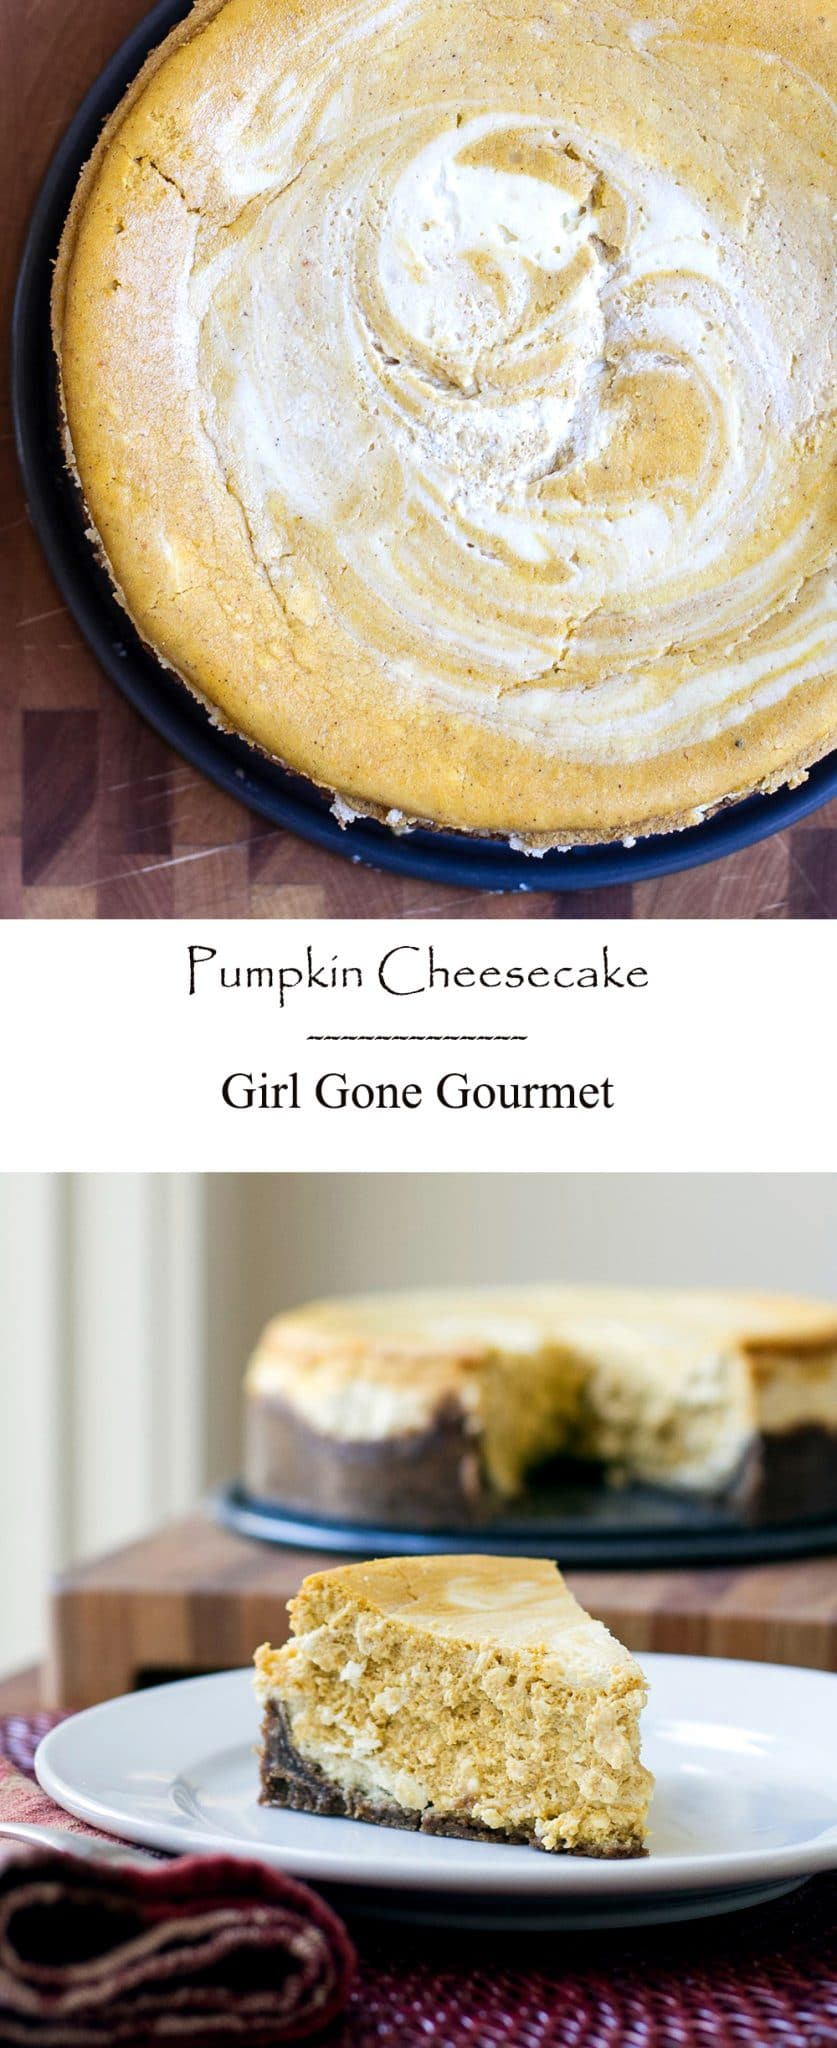 Pumpkin Cheesecake | Girl Gone Gourmet